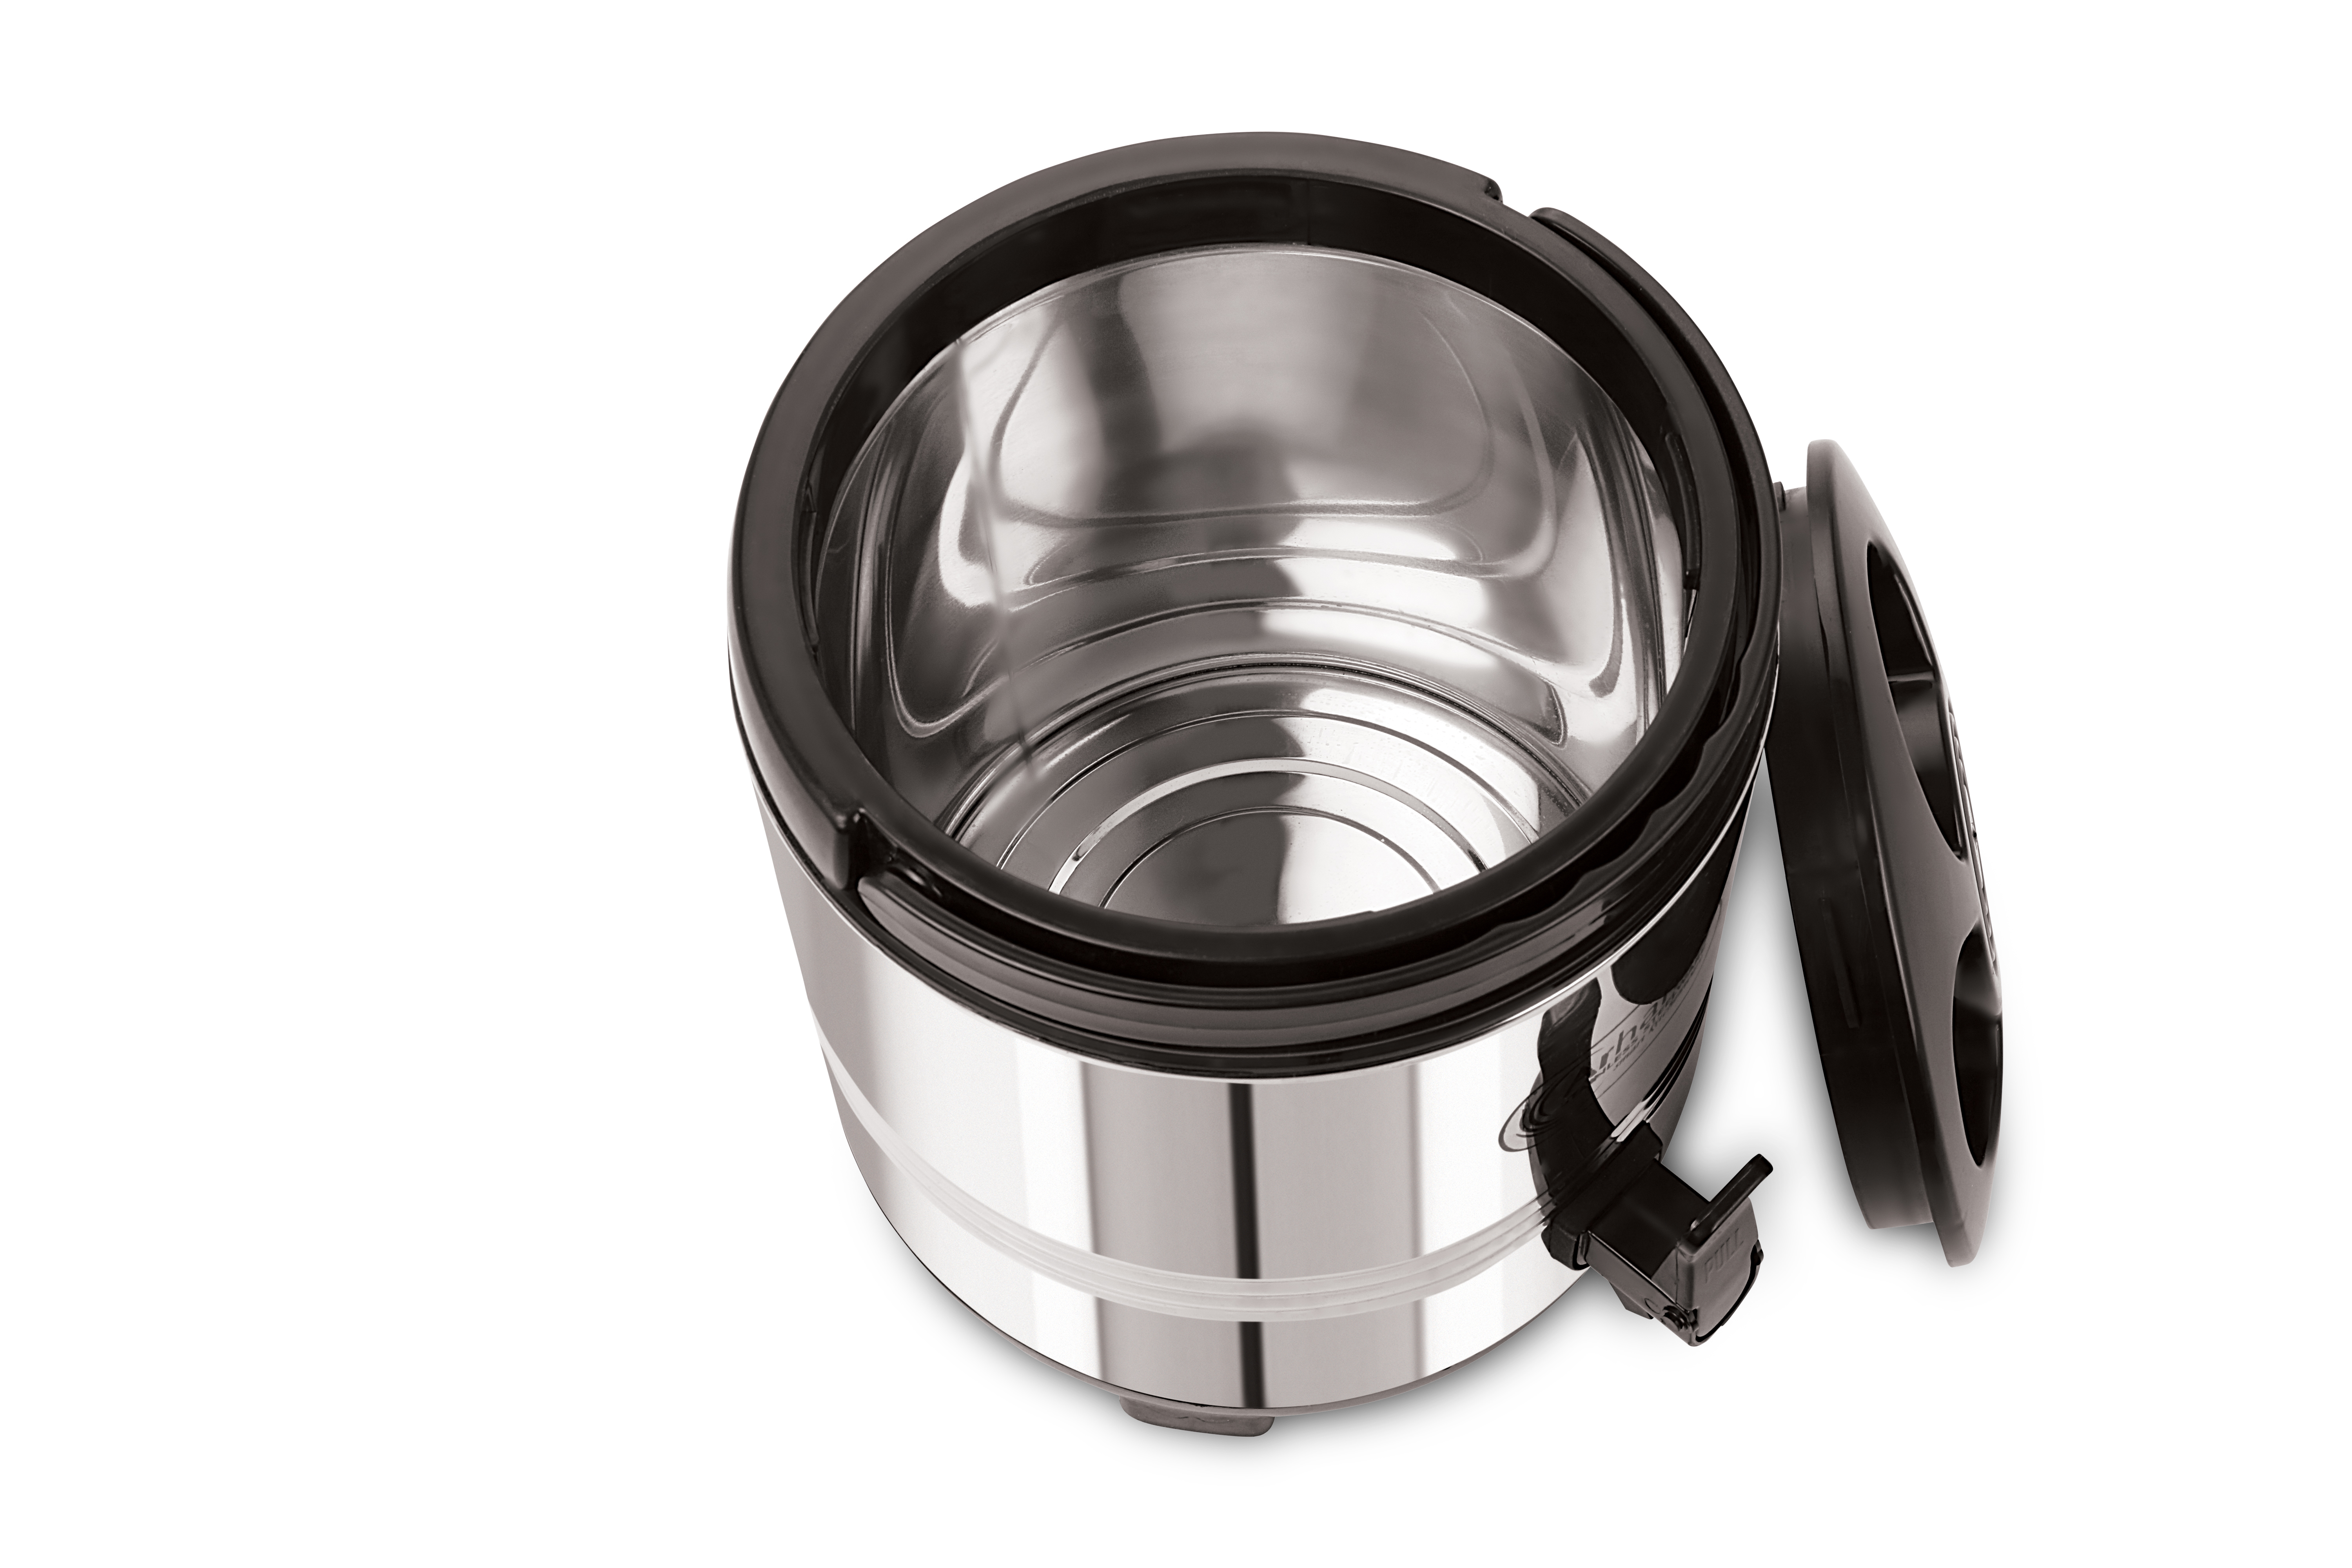 STAINLESS STEEL AROMA 3.5 LTR